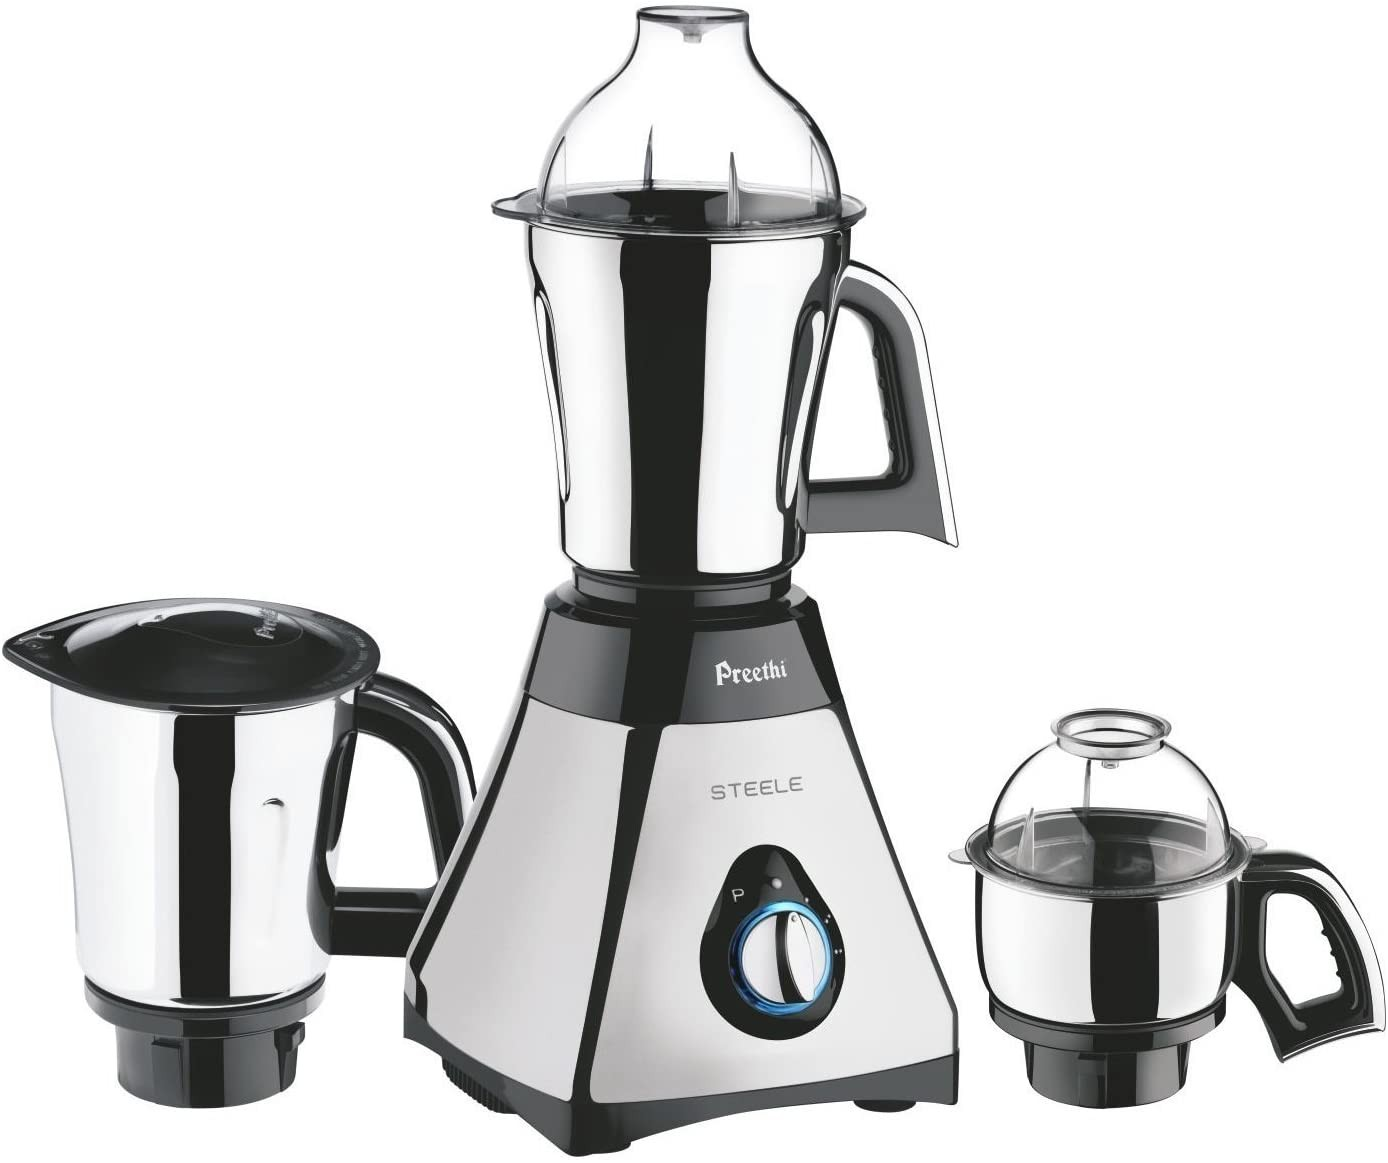 preethi-steele-supreme-550w-3-jar-mixer-grinder-110-volts